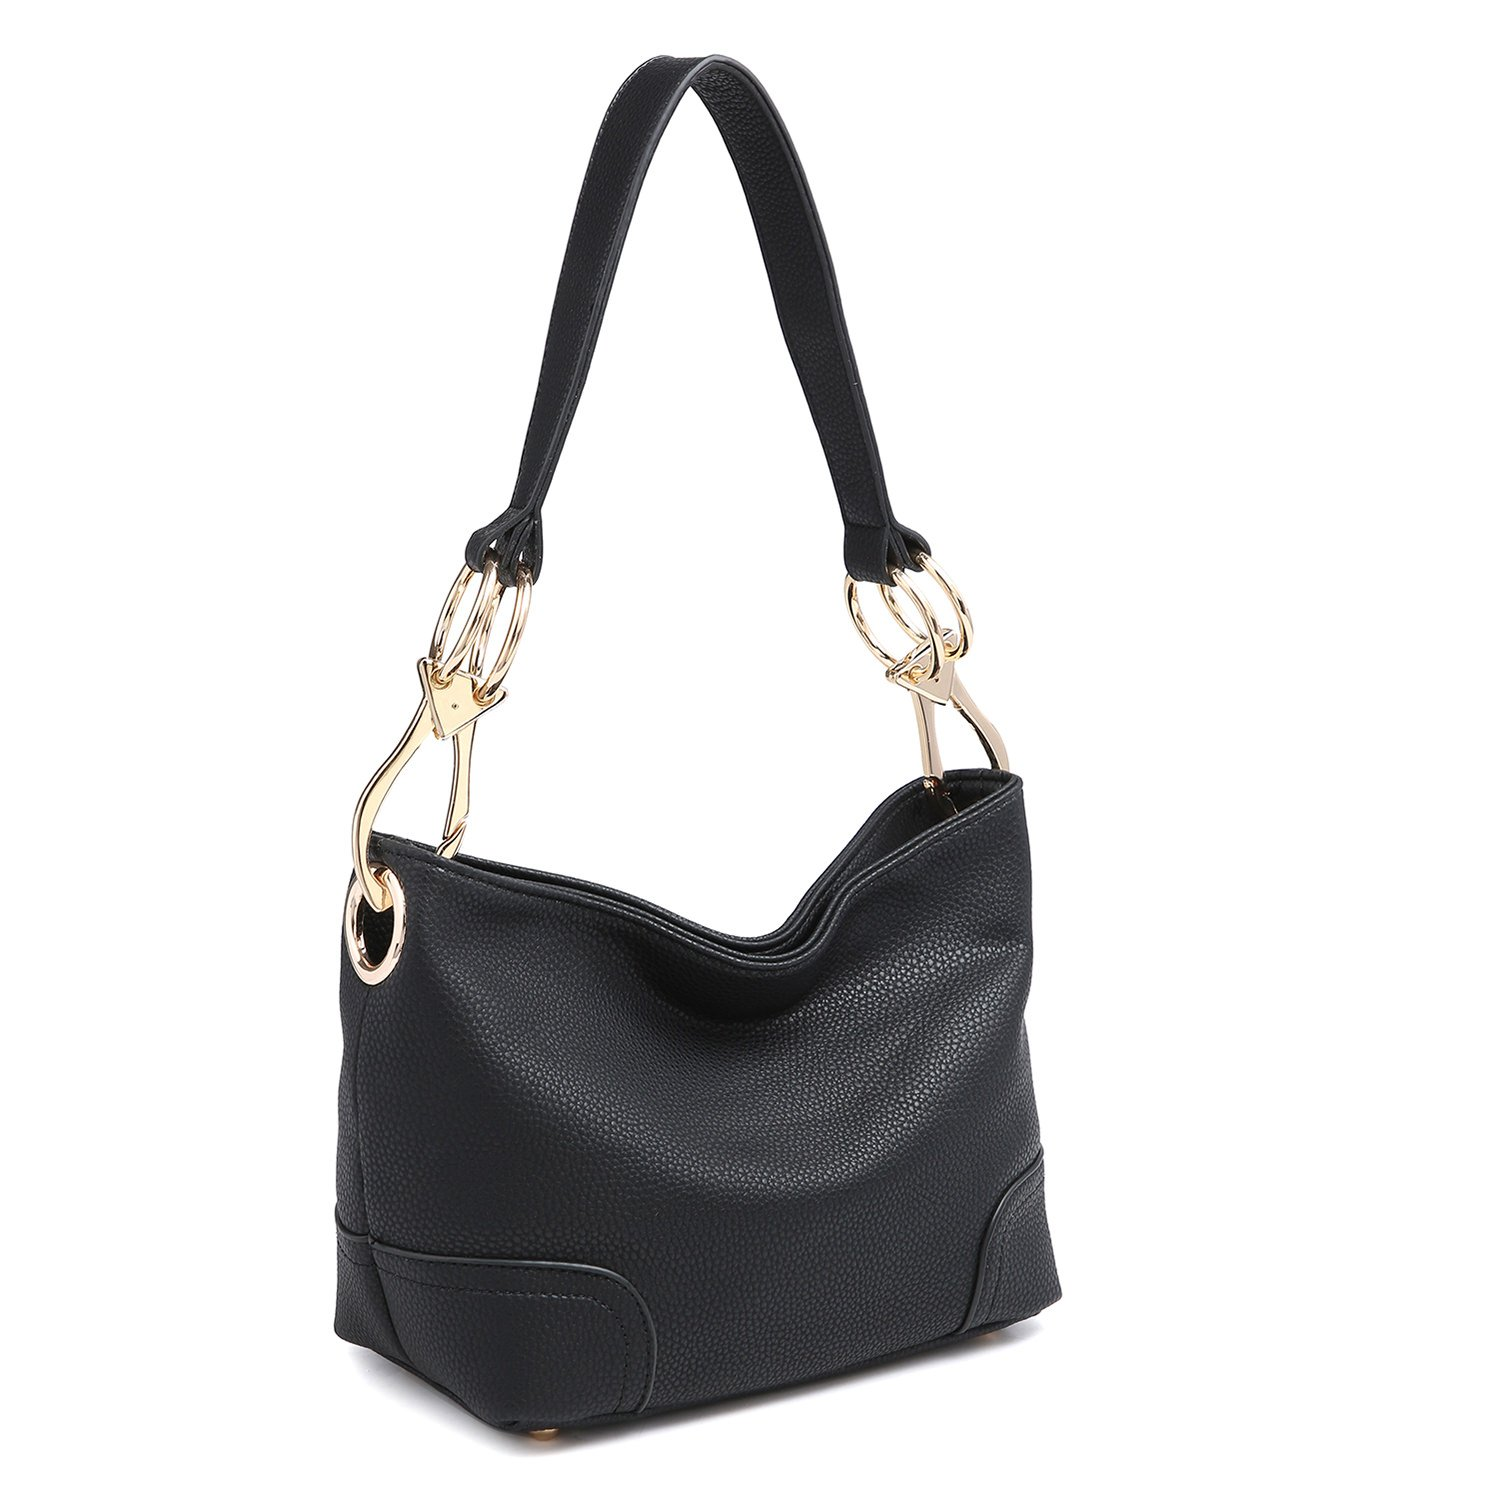 Classic Women Hobo Shoulder Bag Ladies Tote Purses Top Handle Handbag Faux Vegan Leather Black